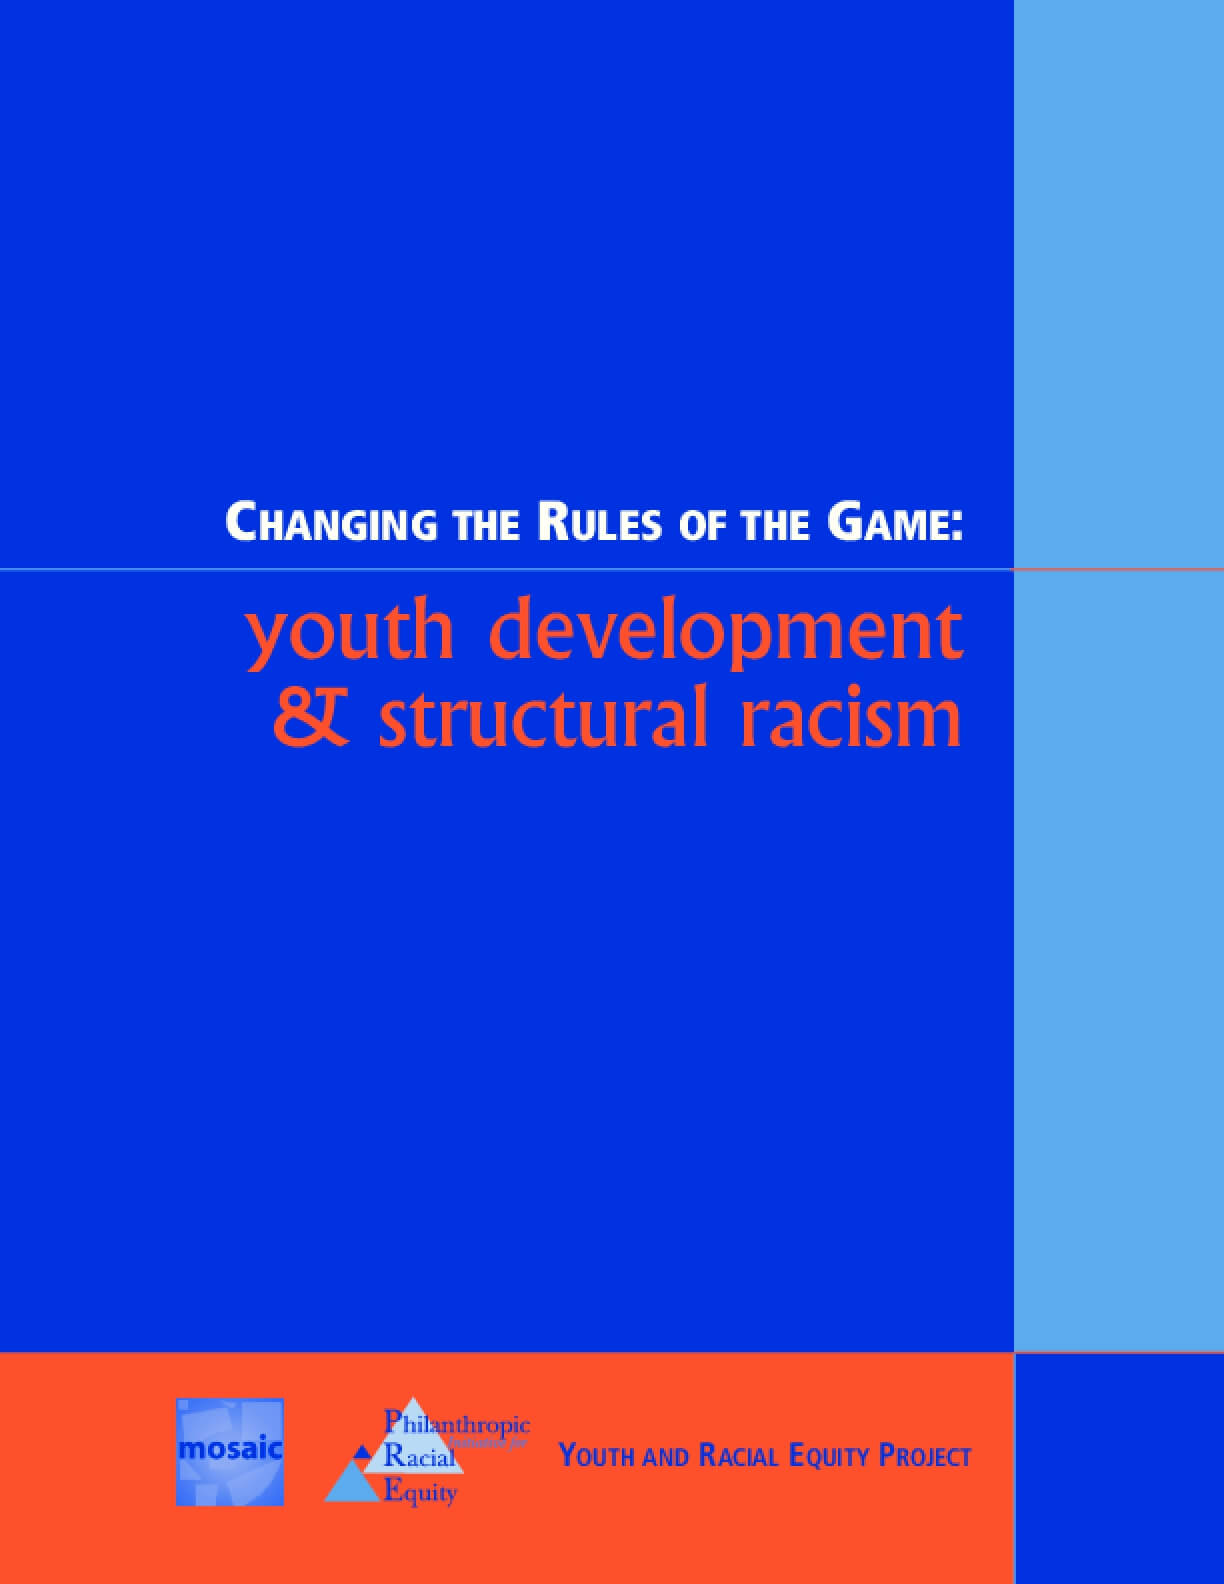 Changing the Rules of the Game: Youth Development & Structural Racism